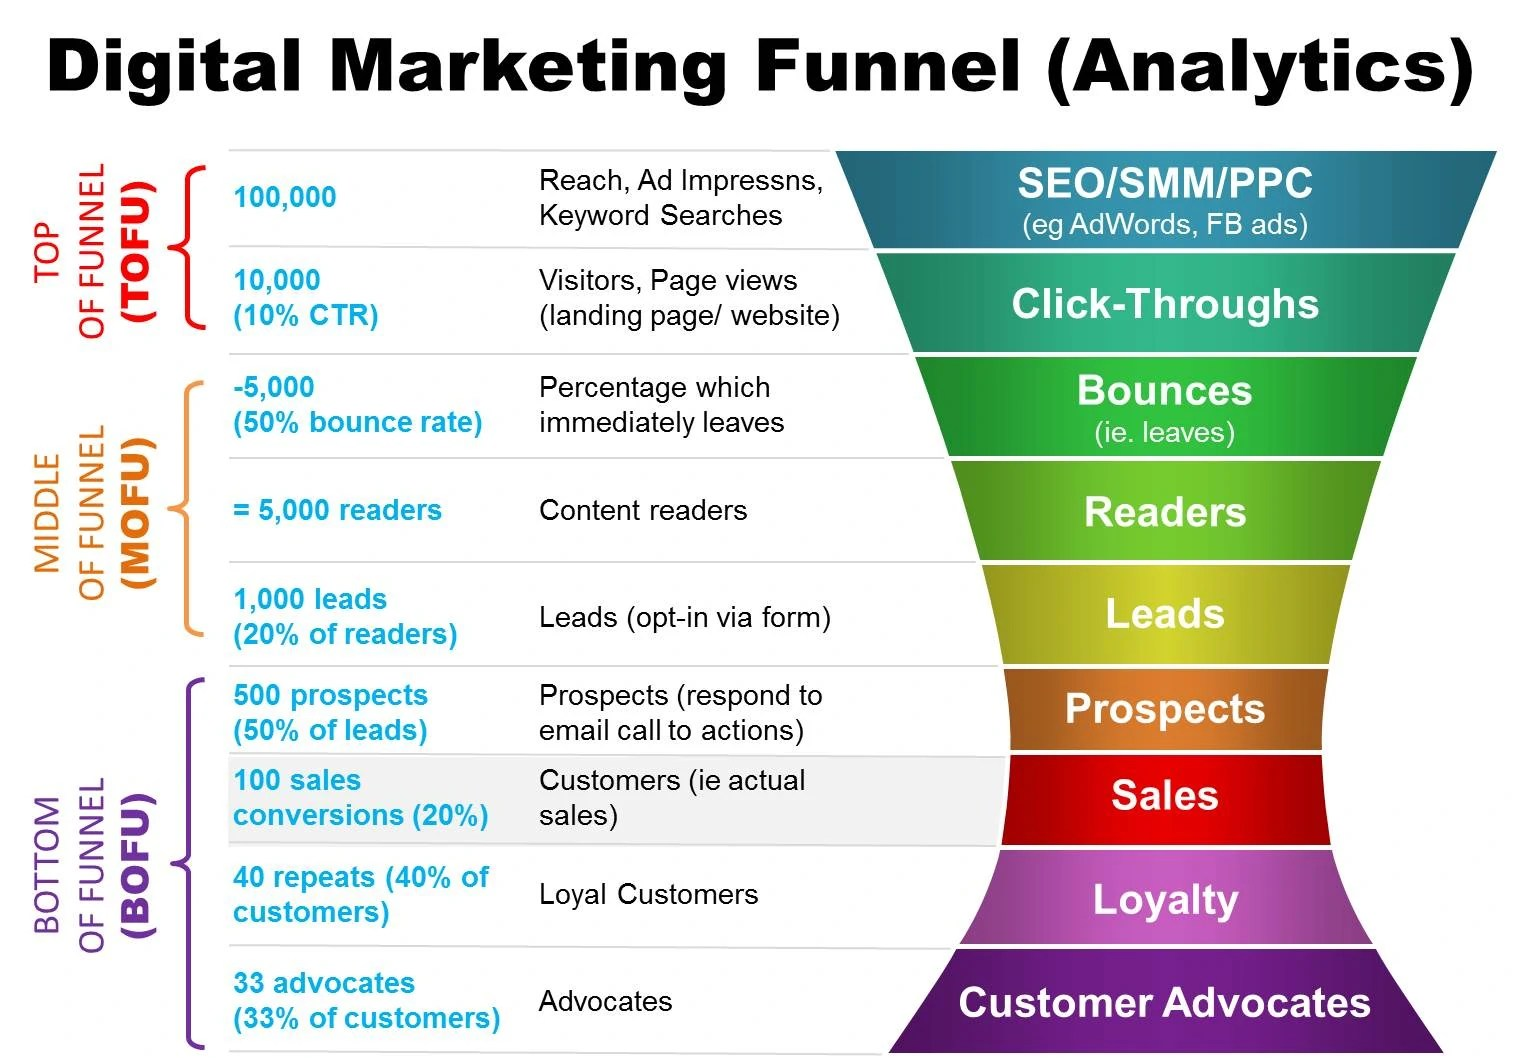 How To Optimize Your Digital Marketing Funnel